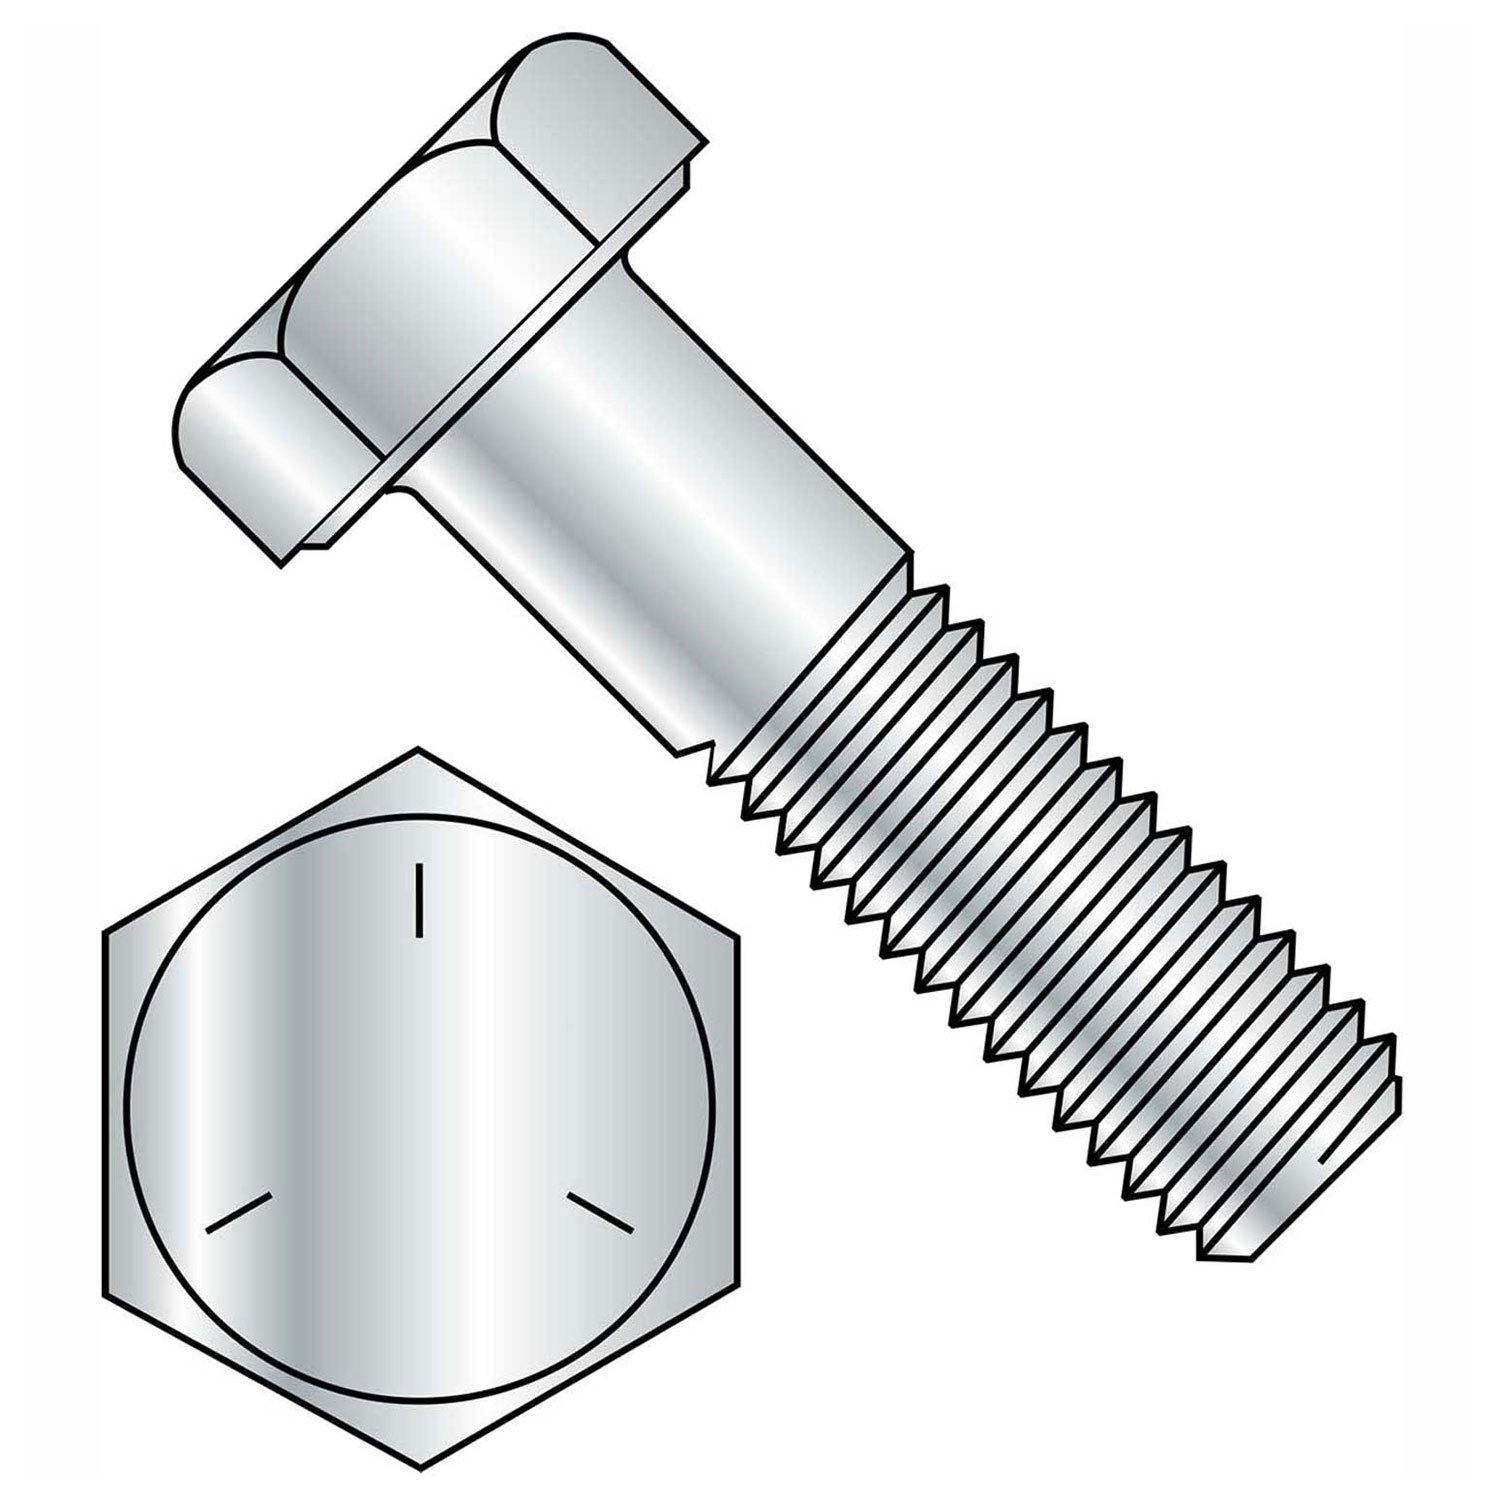 Steel 1-3//4 Long 1//2-13 Thread Size External Hex Brighton-Best International 847300 Hex Medium-Strength Grade 5 Head Screw Pack of 50